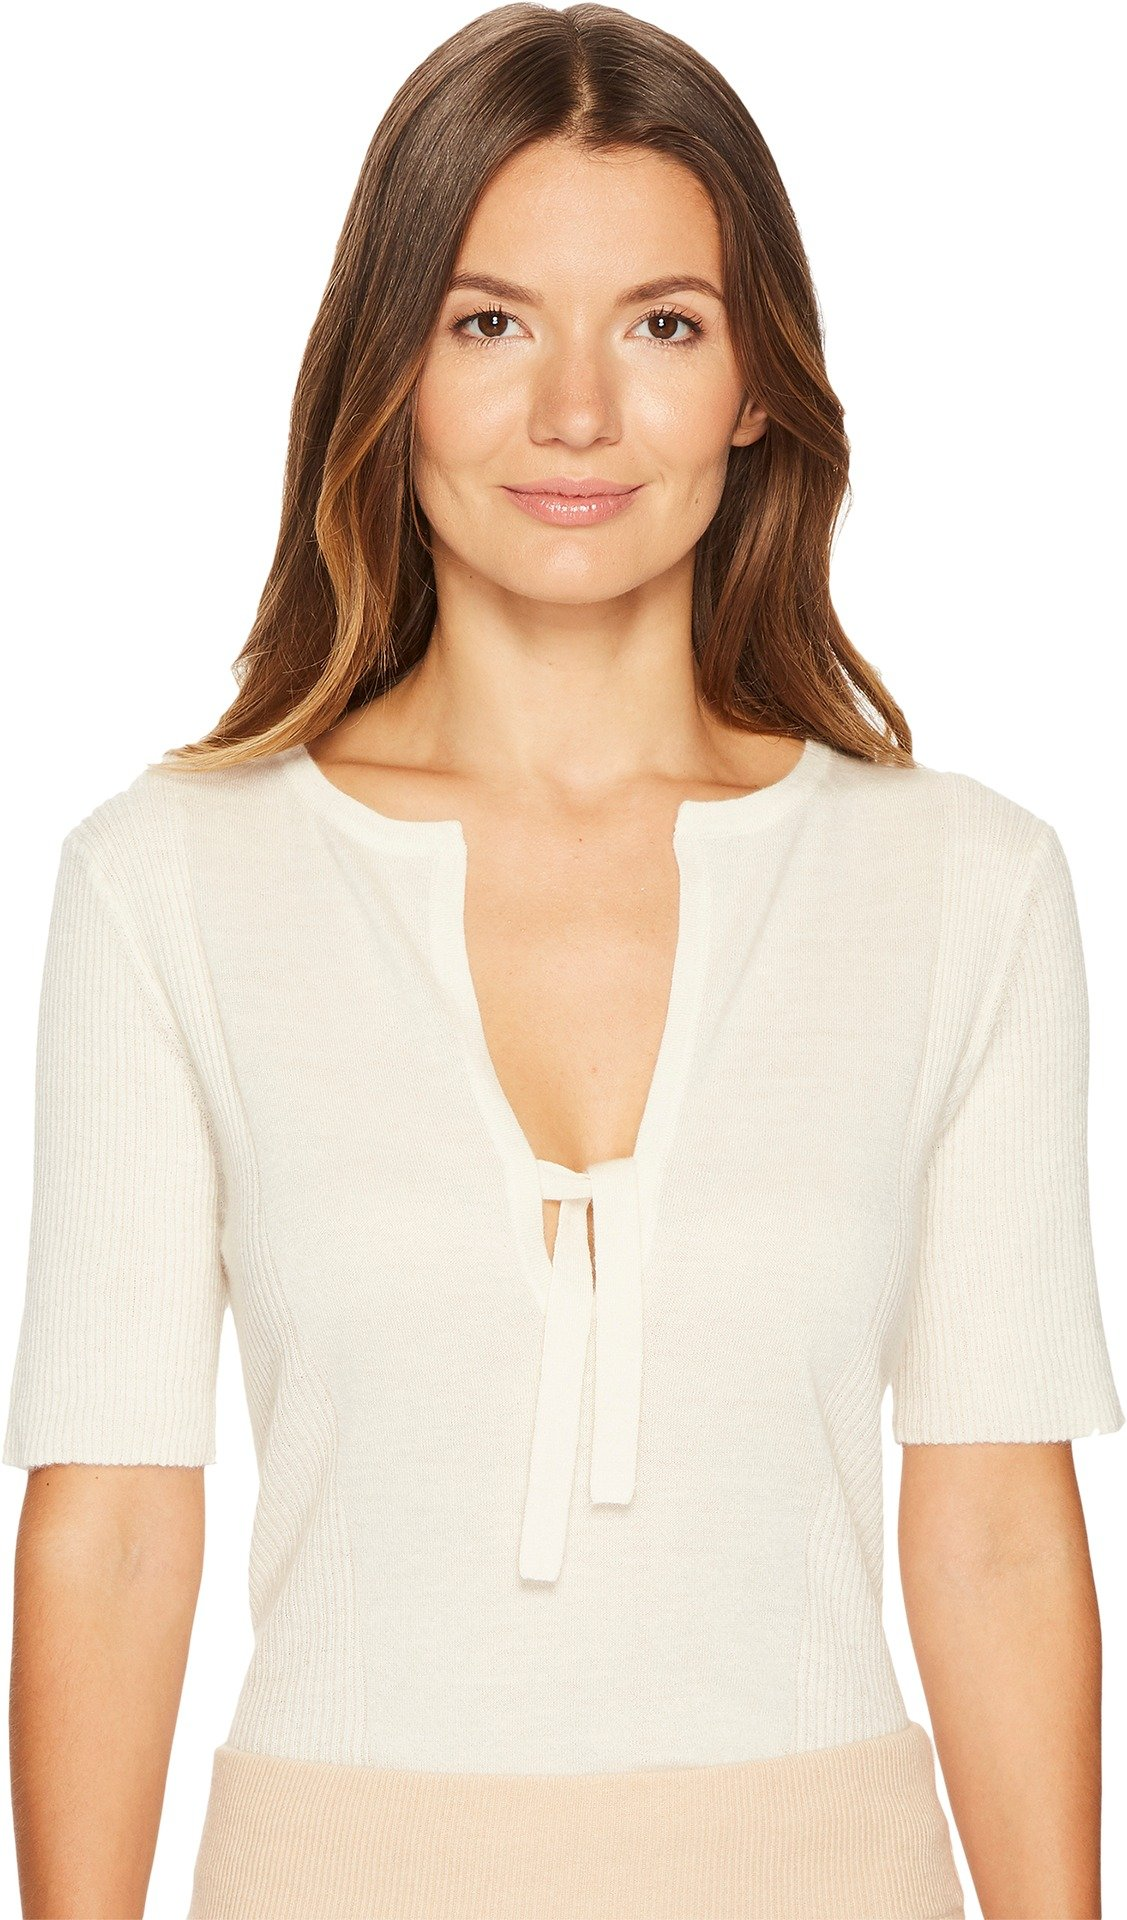 Cashmere In Love Women's Cara Short Sleeve Pullover Off-White Small